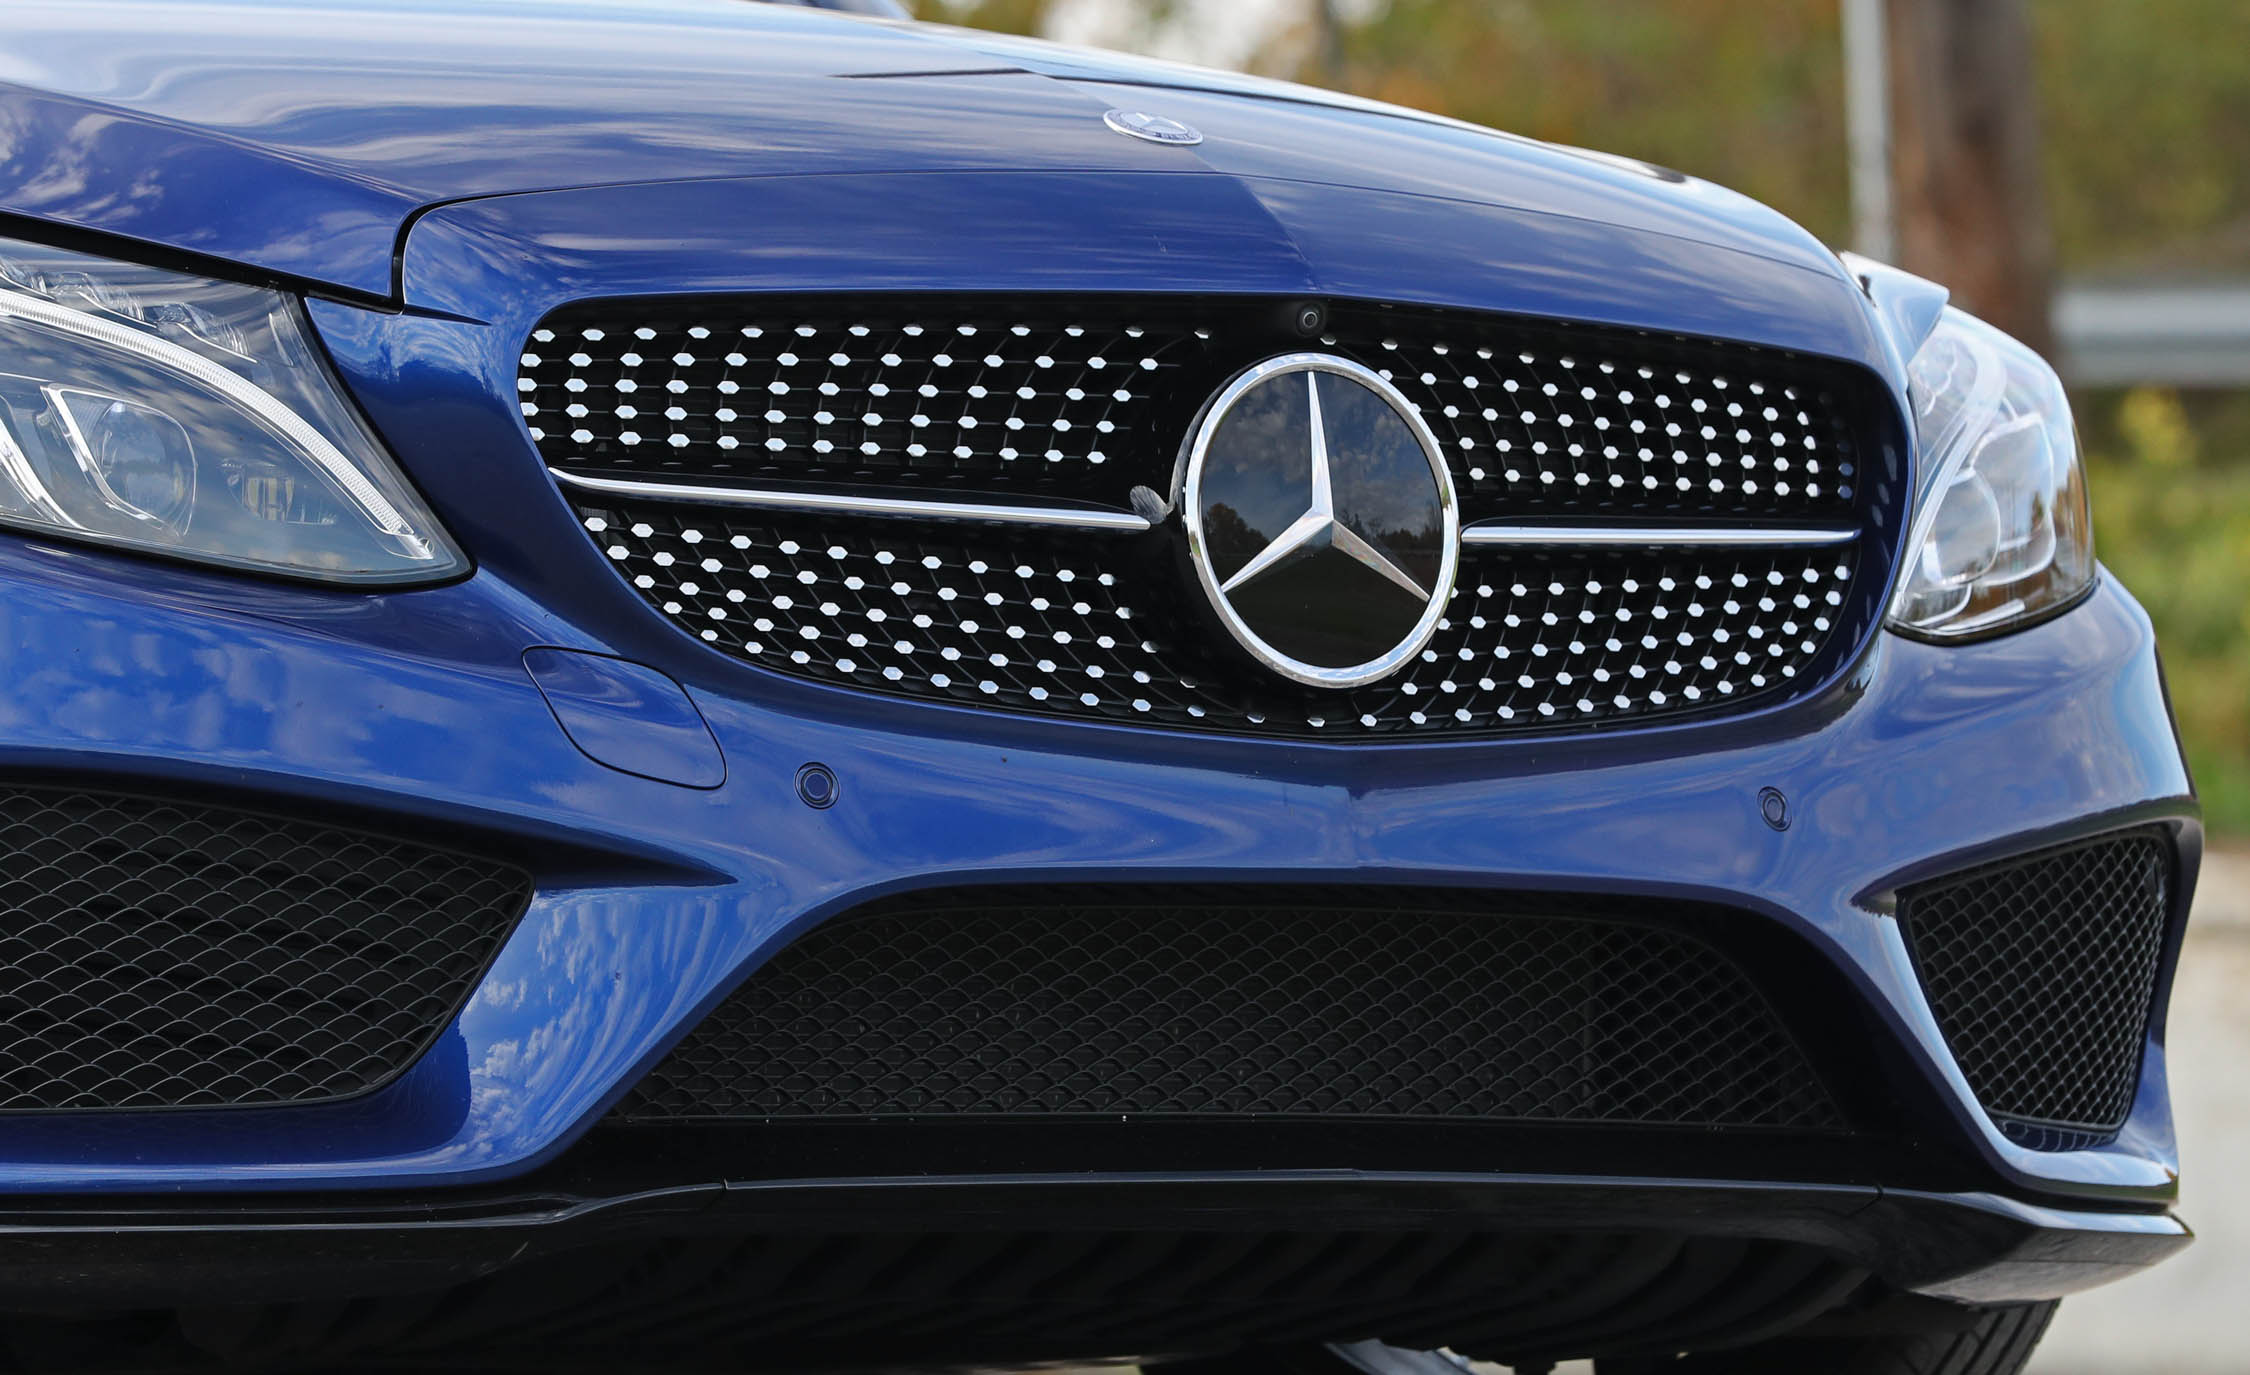 2017 Mercedes Benz C300 4MATIC Coupe Exterior View Grille And Bumper (Photo 17 of 44)